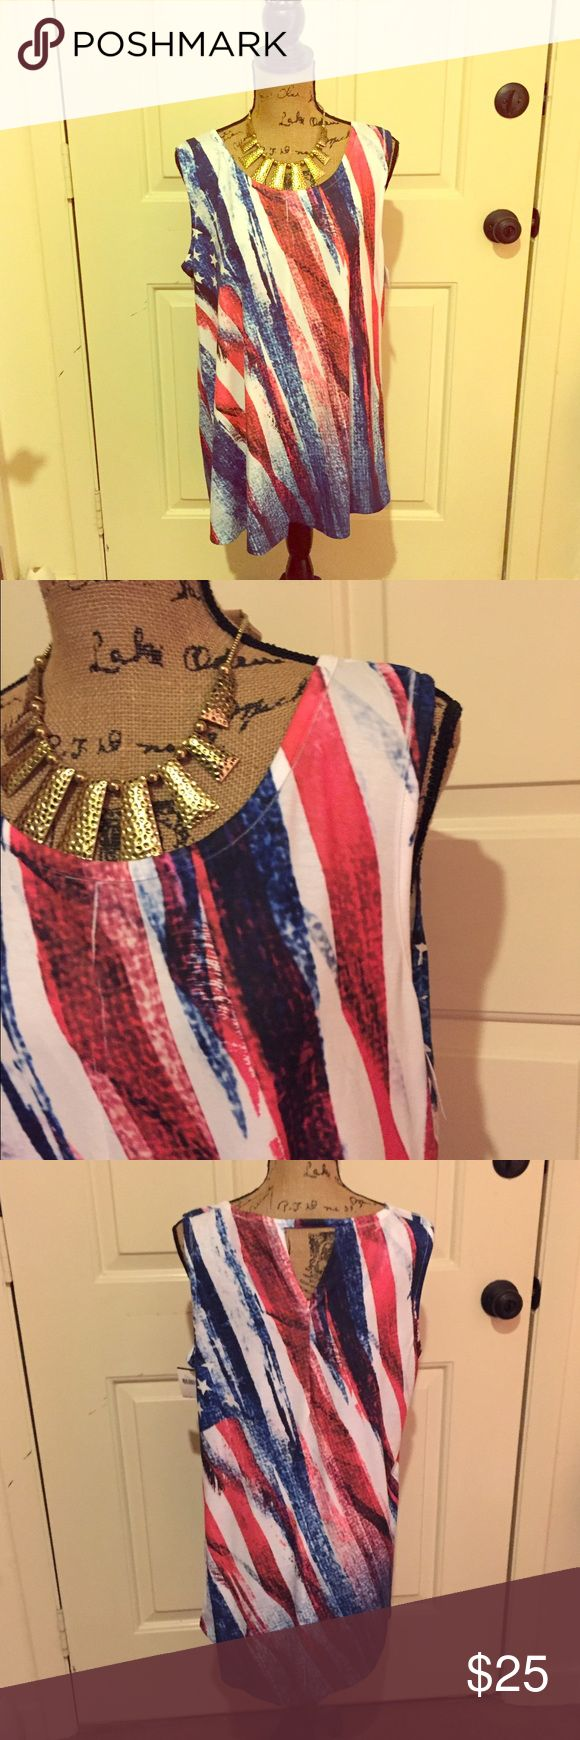 🆕 New Directions patriotic tank nwt Super cute! Perfect for your American login festivities 🇺🇸 polyester and spandex blend. 👺NO TRADES DONT ASK! ✌🏼️Transactions through posh only!  😻 friendly home 💃🏼 if you ask a question about an item, please be ready to purchase (serious buyers only) ❤️Color may vary in person!-inc. blue and red!  💗⭐️Bundles of 5+ LISTINGS are 5️⃣0️⃣% off! ⭐️buyer pays extra shipping if likely to be over 5 lbs 🙋thanks for looking! new directions Tops Tank Tops